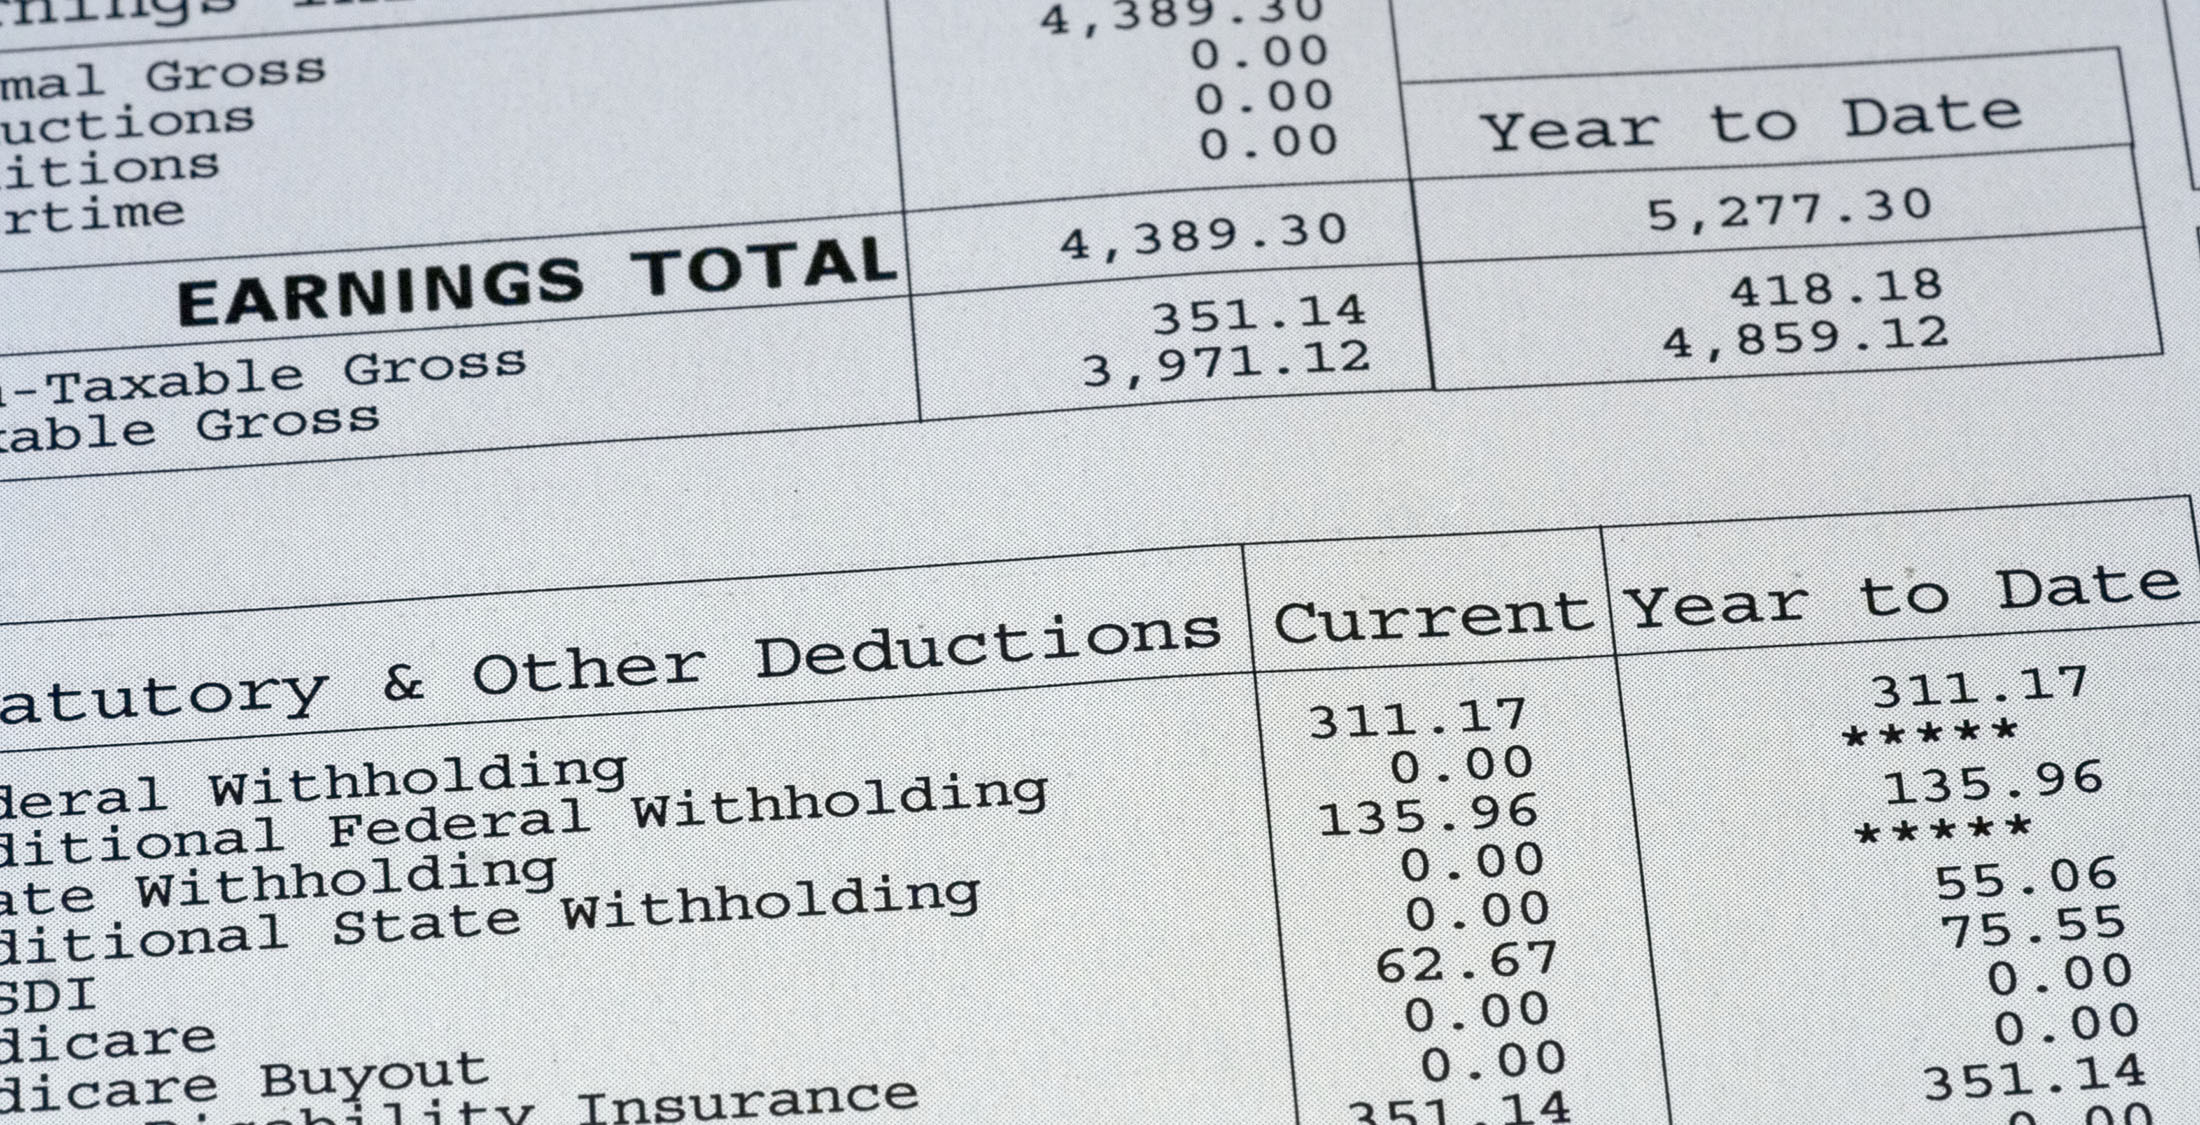 total earnings deductions form